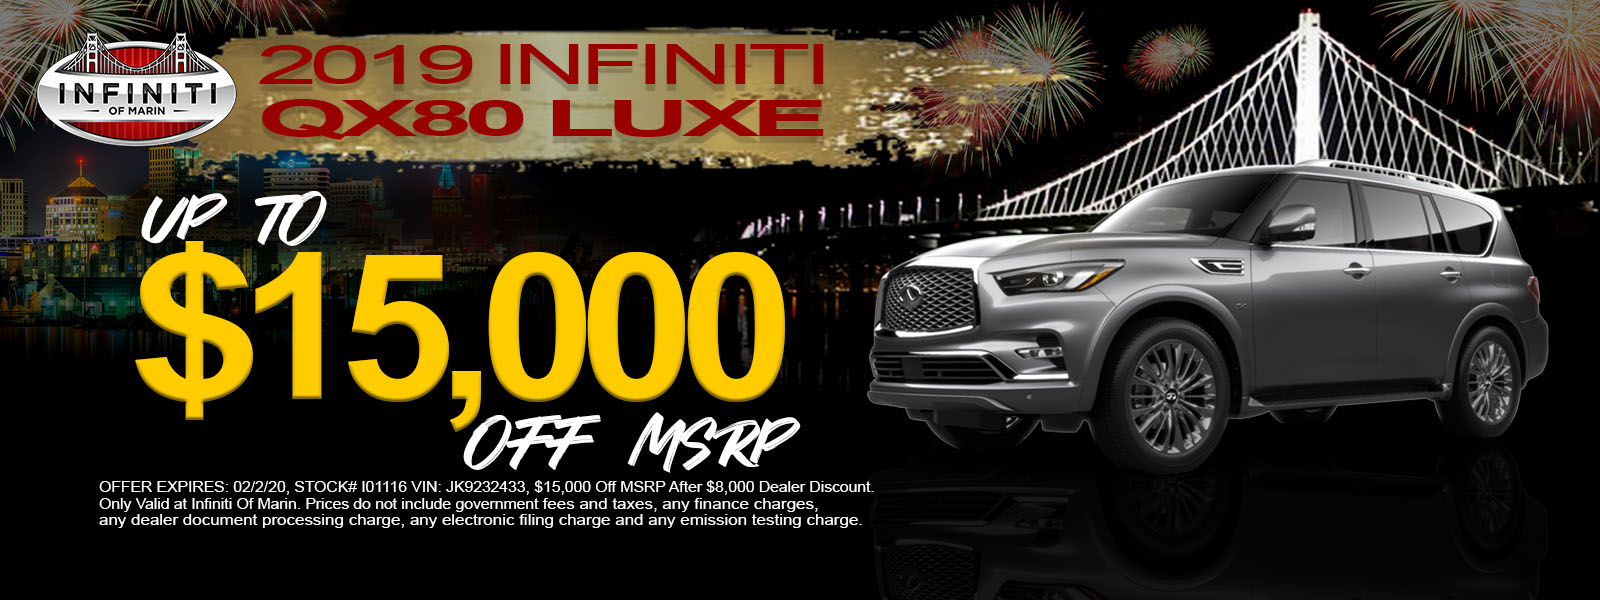 2019 QX80 LUXE 4WD - Special Offer